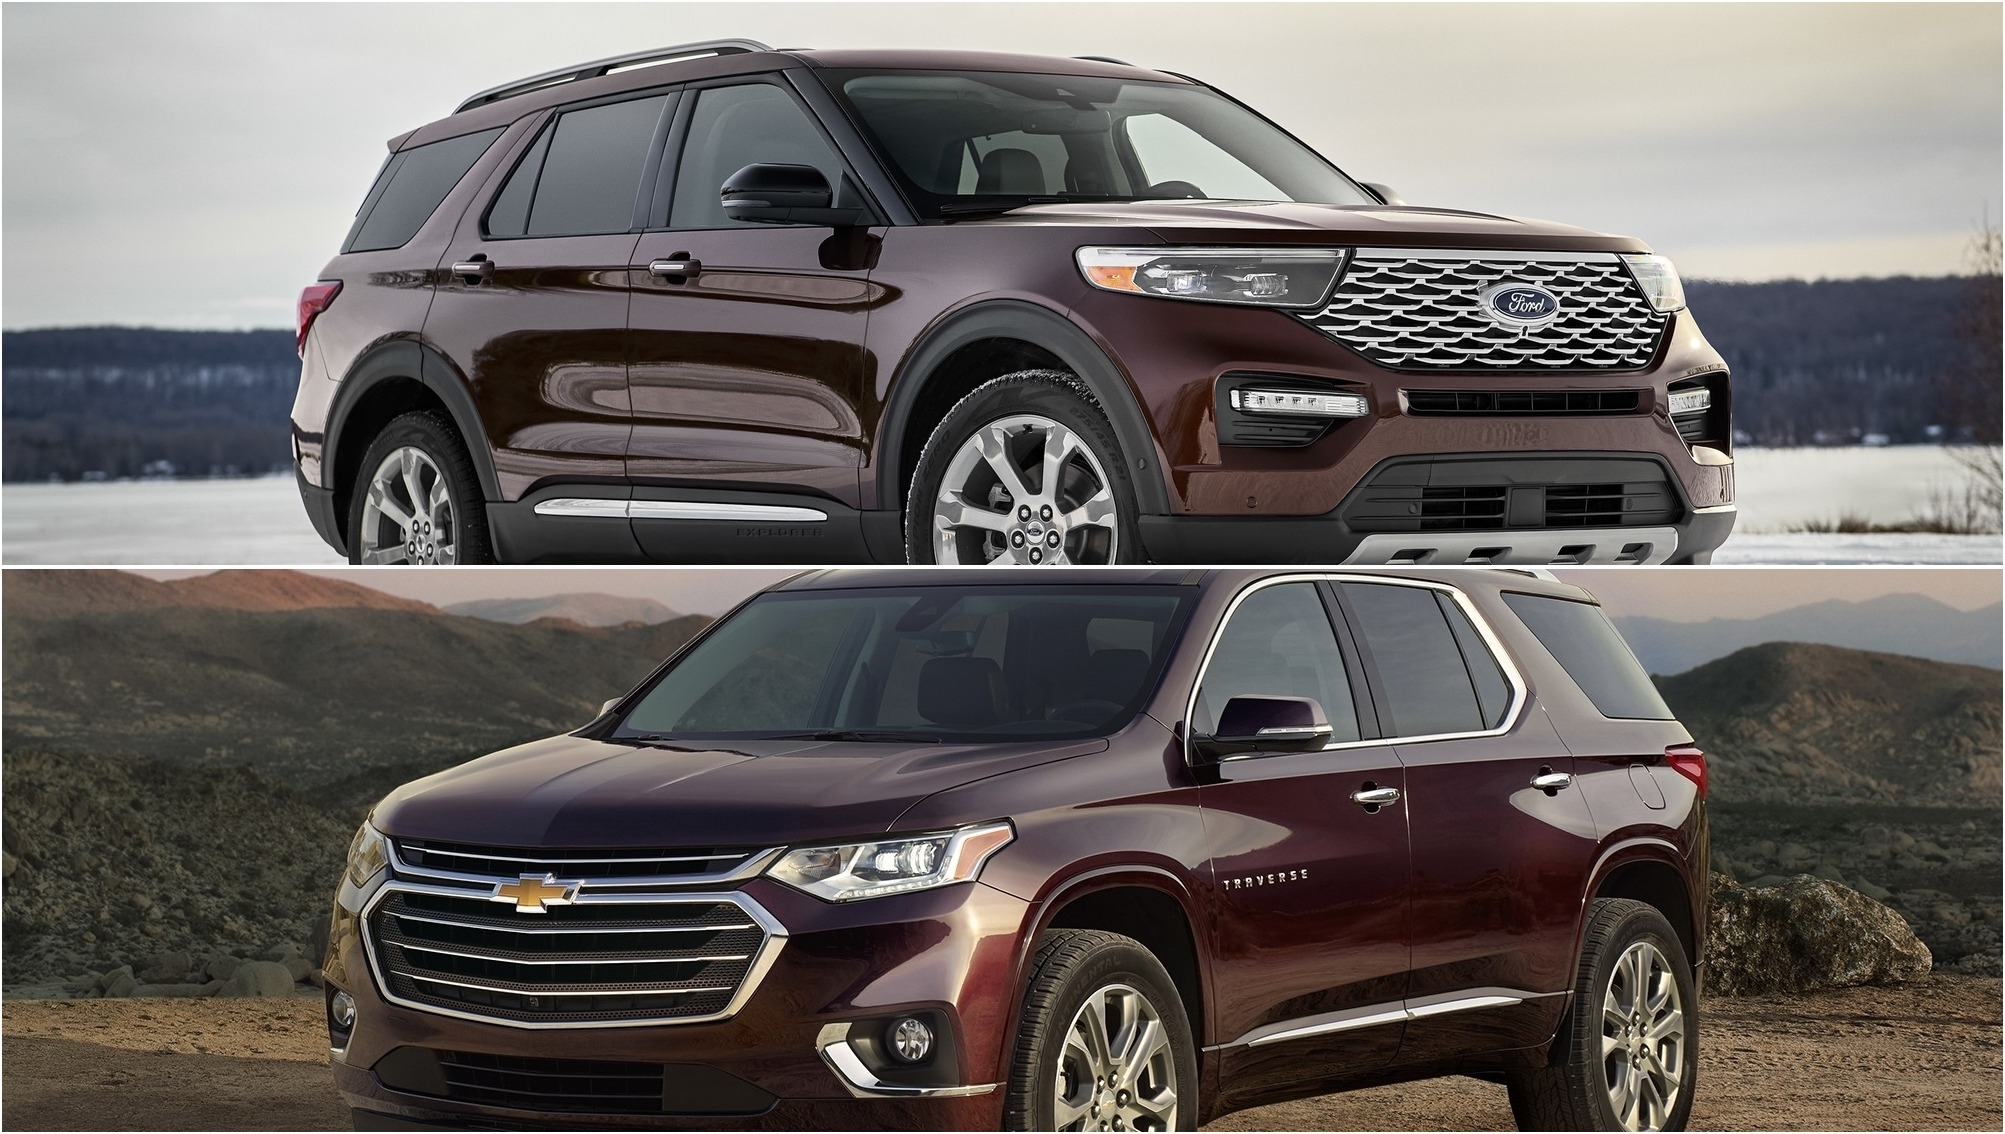 Ford Edge Vs Escape >> 2020 Ford Explorer Vs 2019 Chevy Traverse Pictures, Photos ...